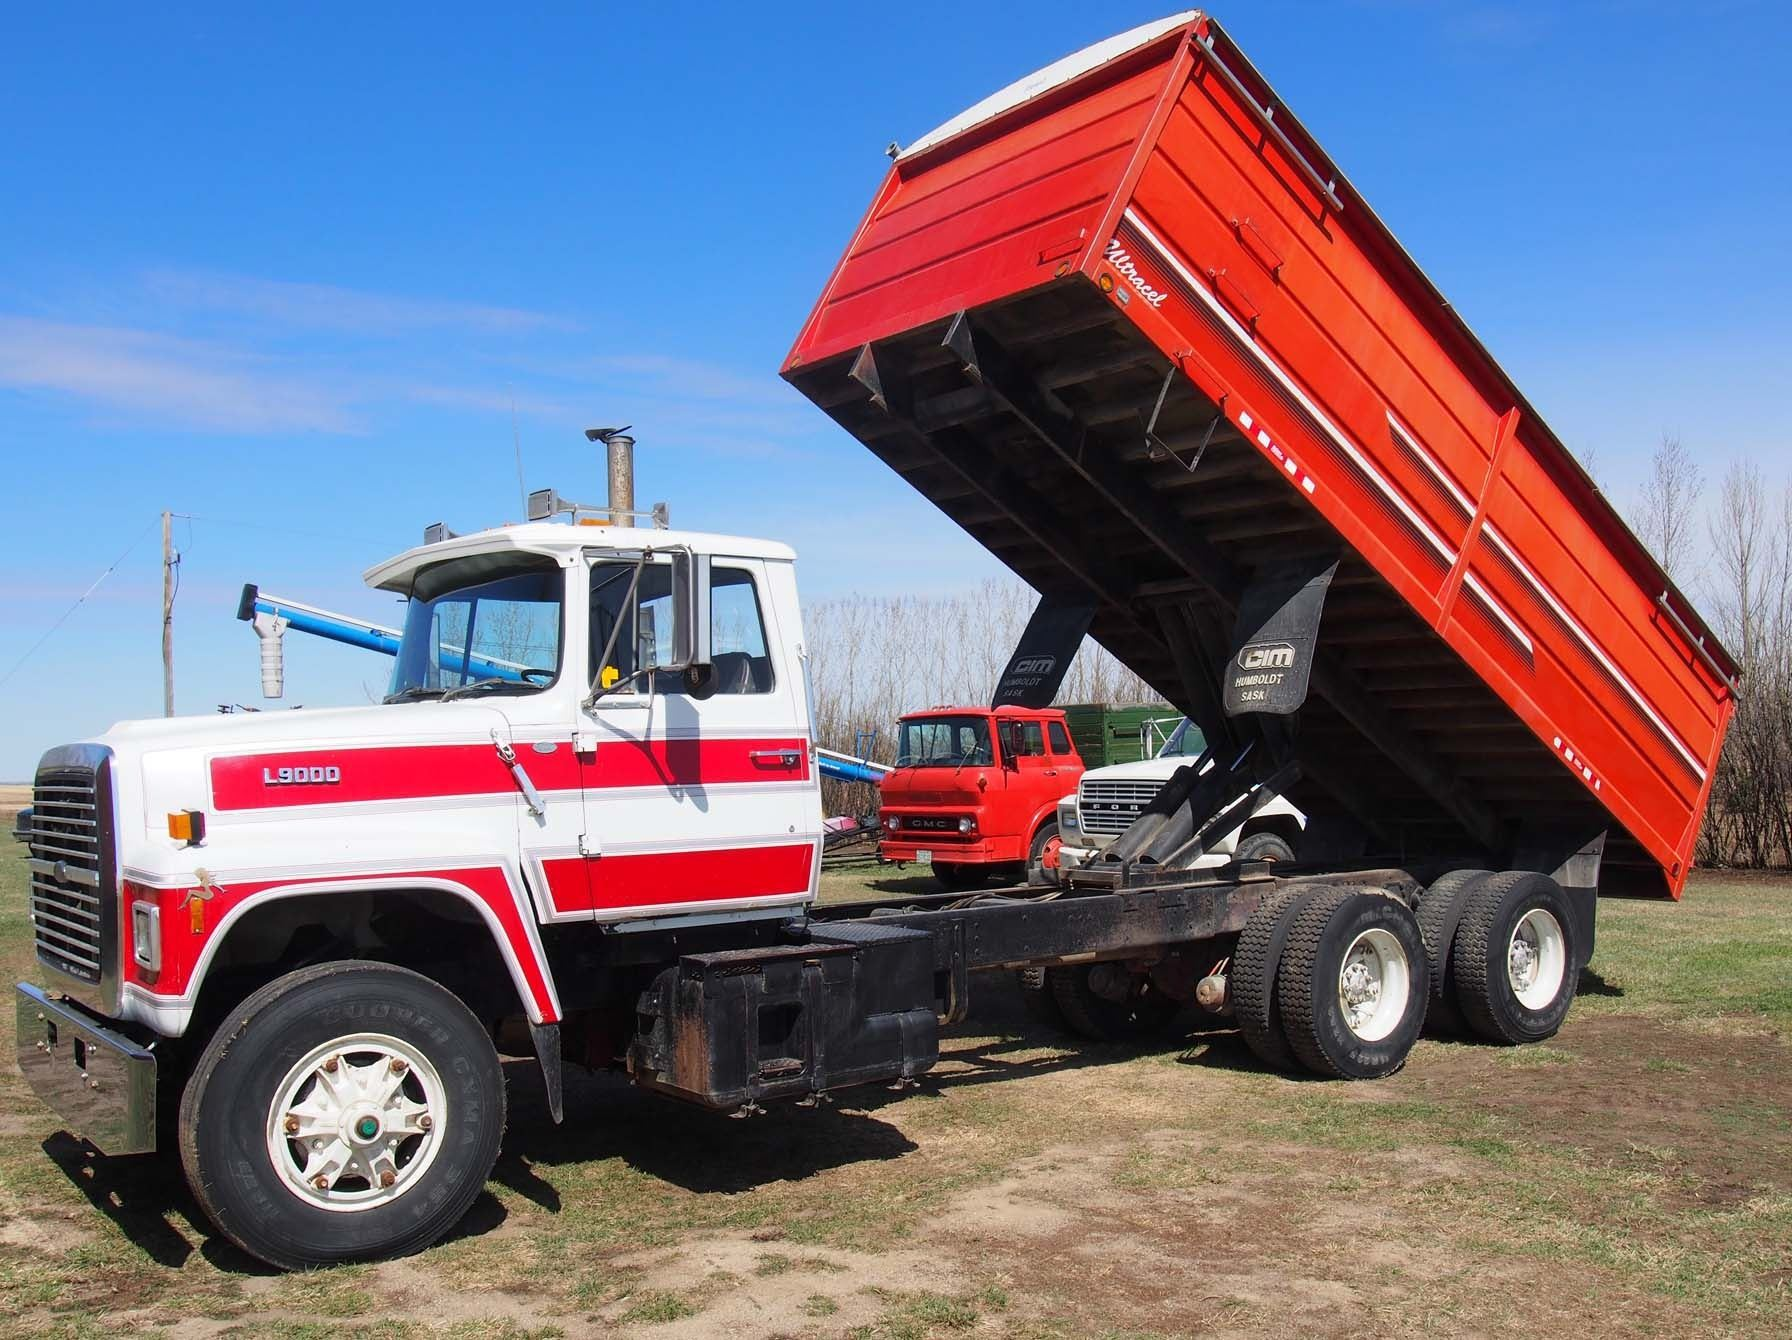 image 11 : 1988 ford l9000 tandem truck 855 cummings engine, 20' box  and